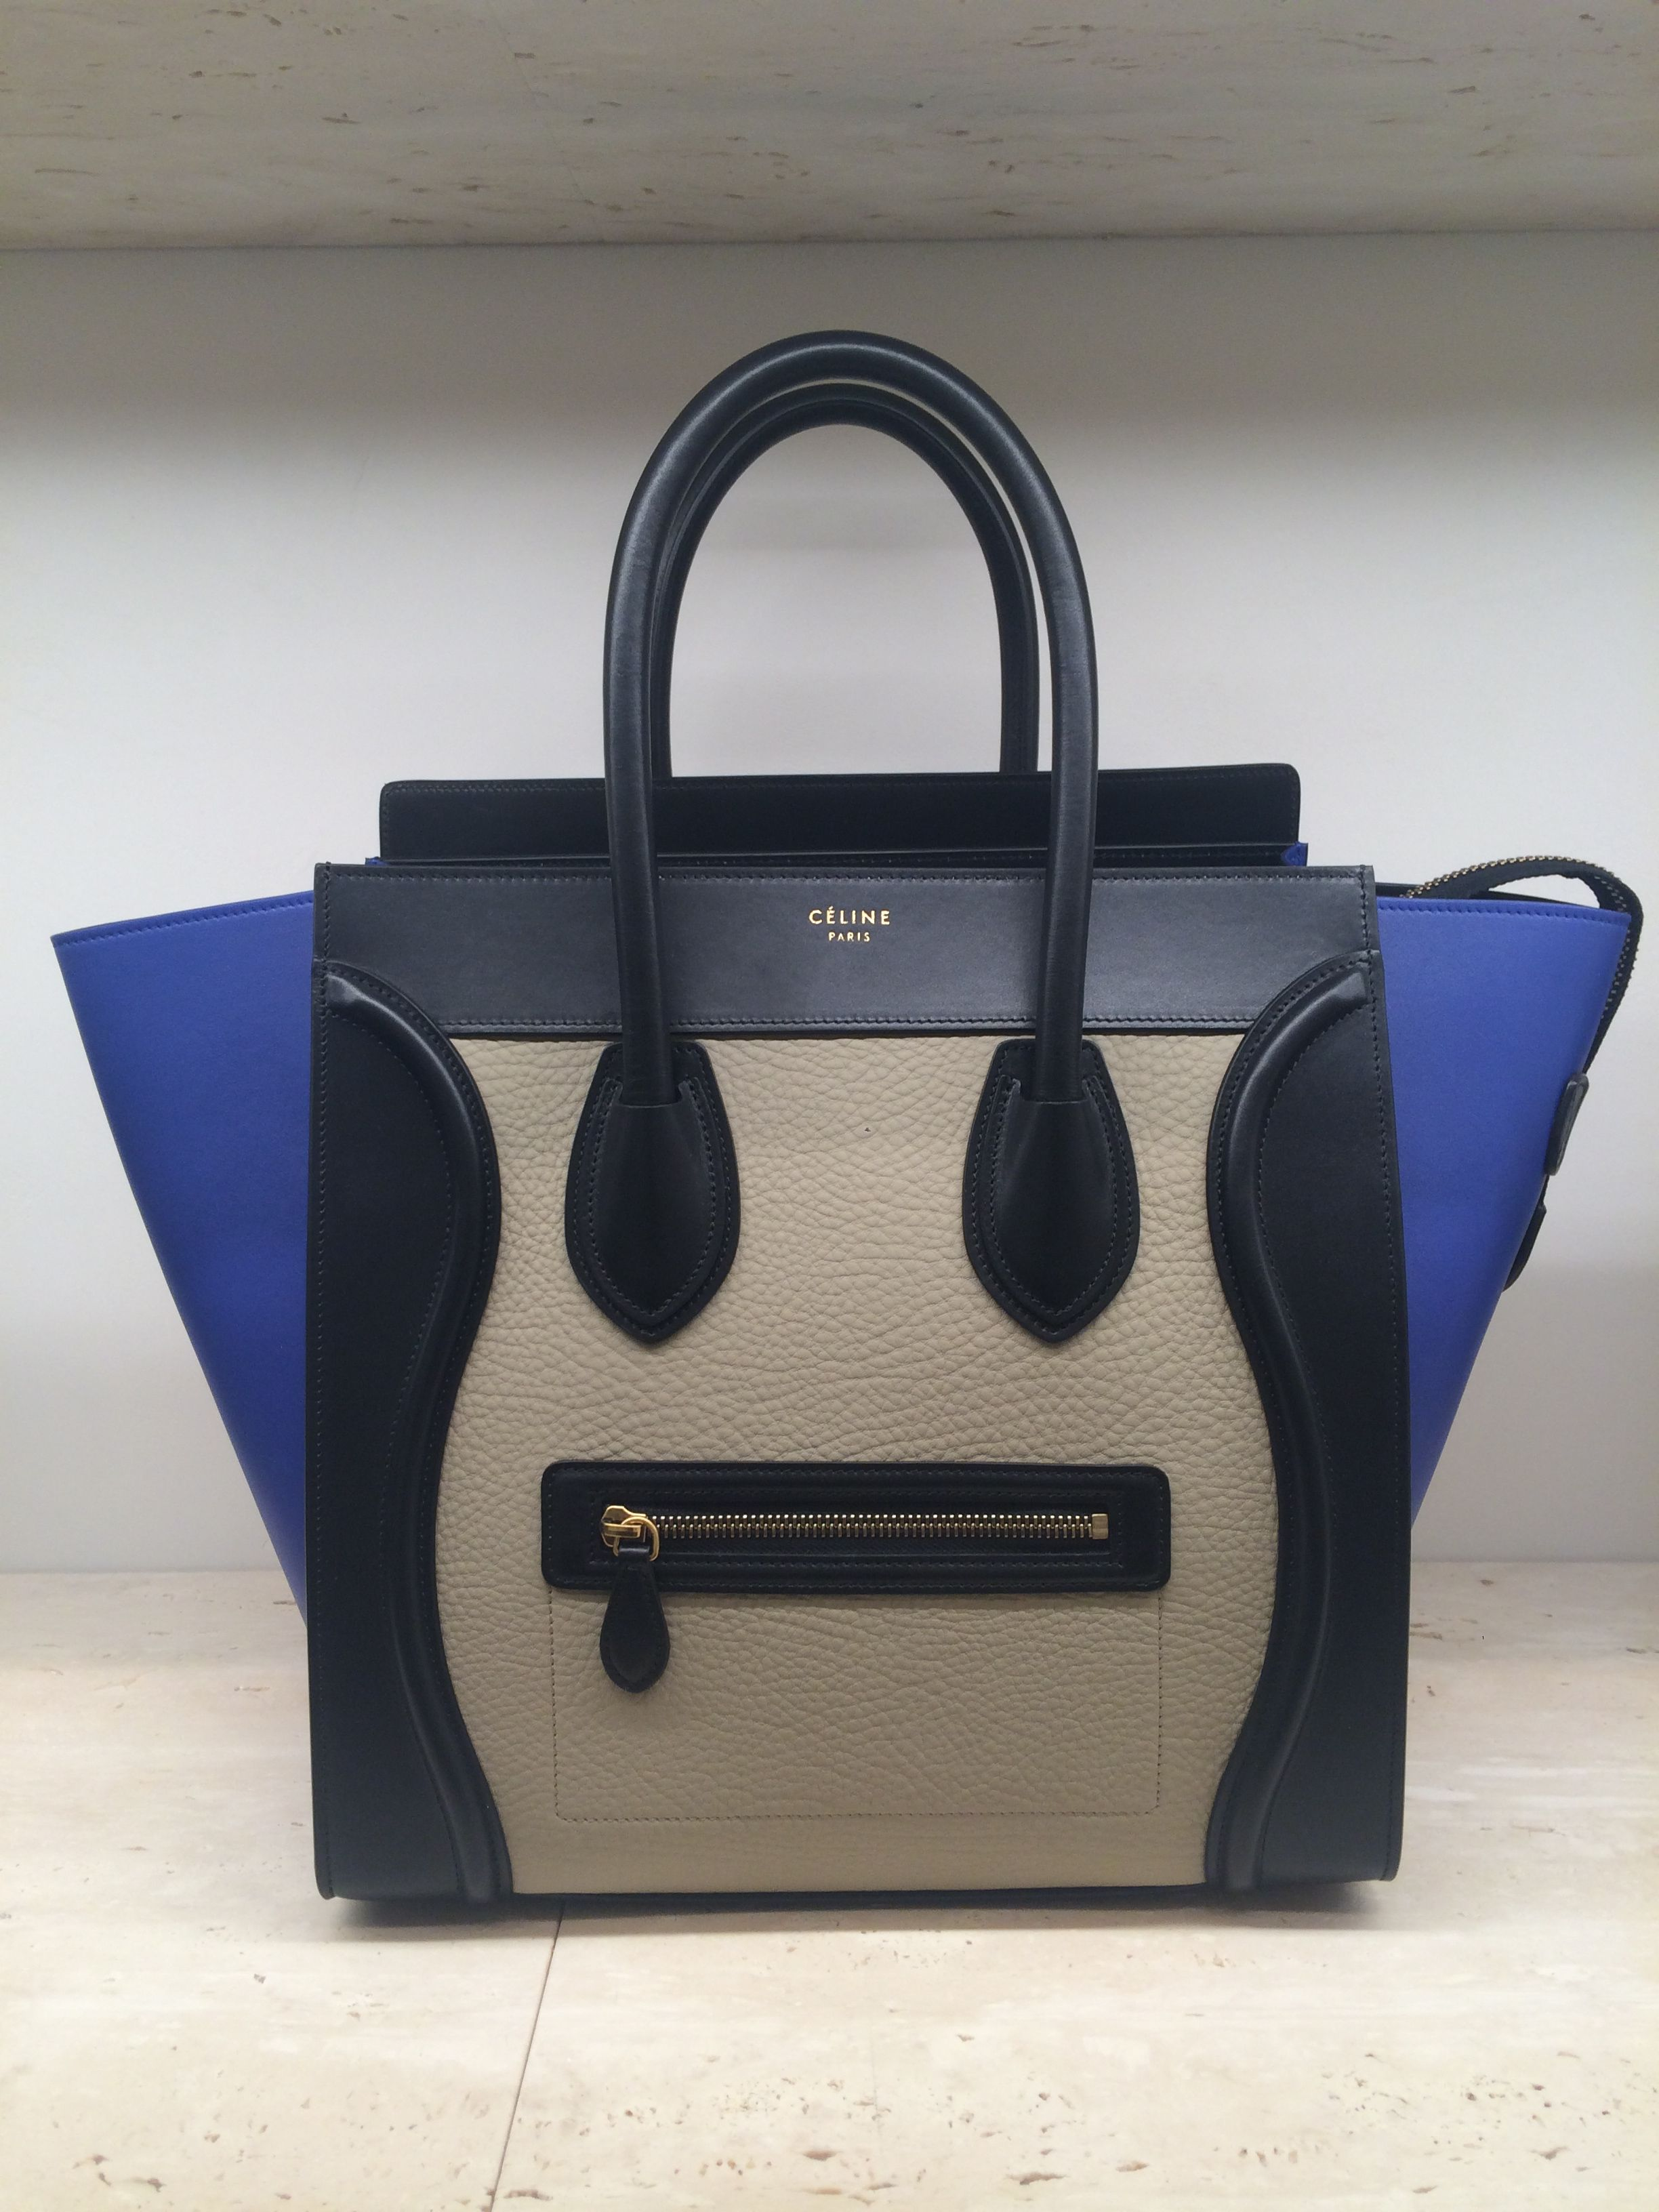 7445061ff442 Black-Blue-Tan  Tricolor  Handbag   Luggage by  Celine  Spring  2015 ...